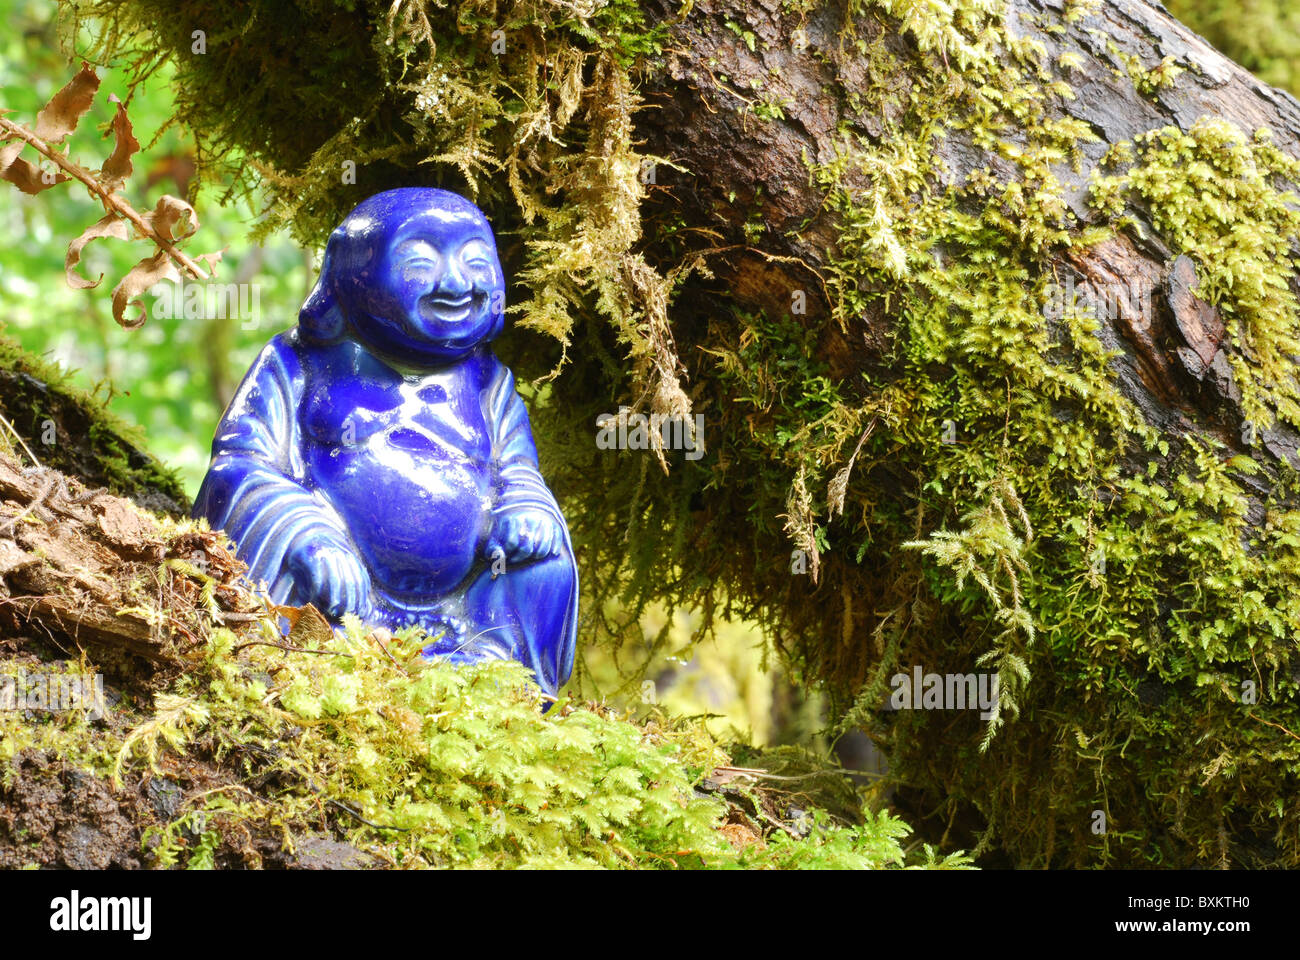 Blue porcelain Buddha statue nestled in mossy tree limbs Stock Photo